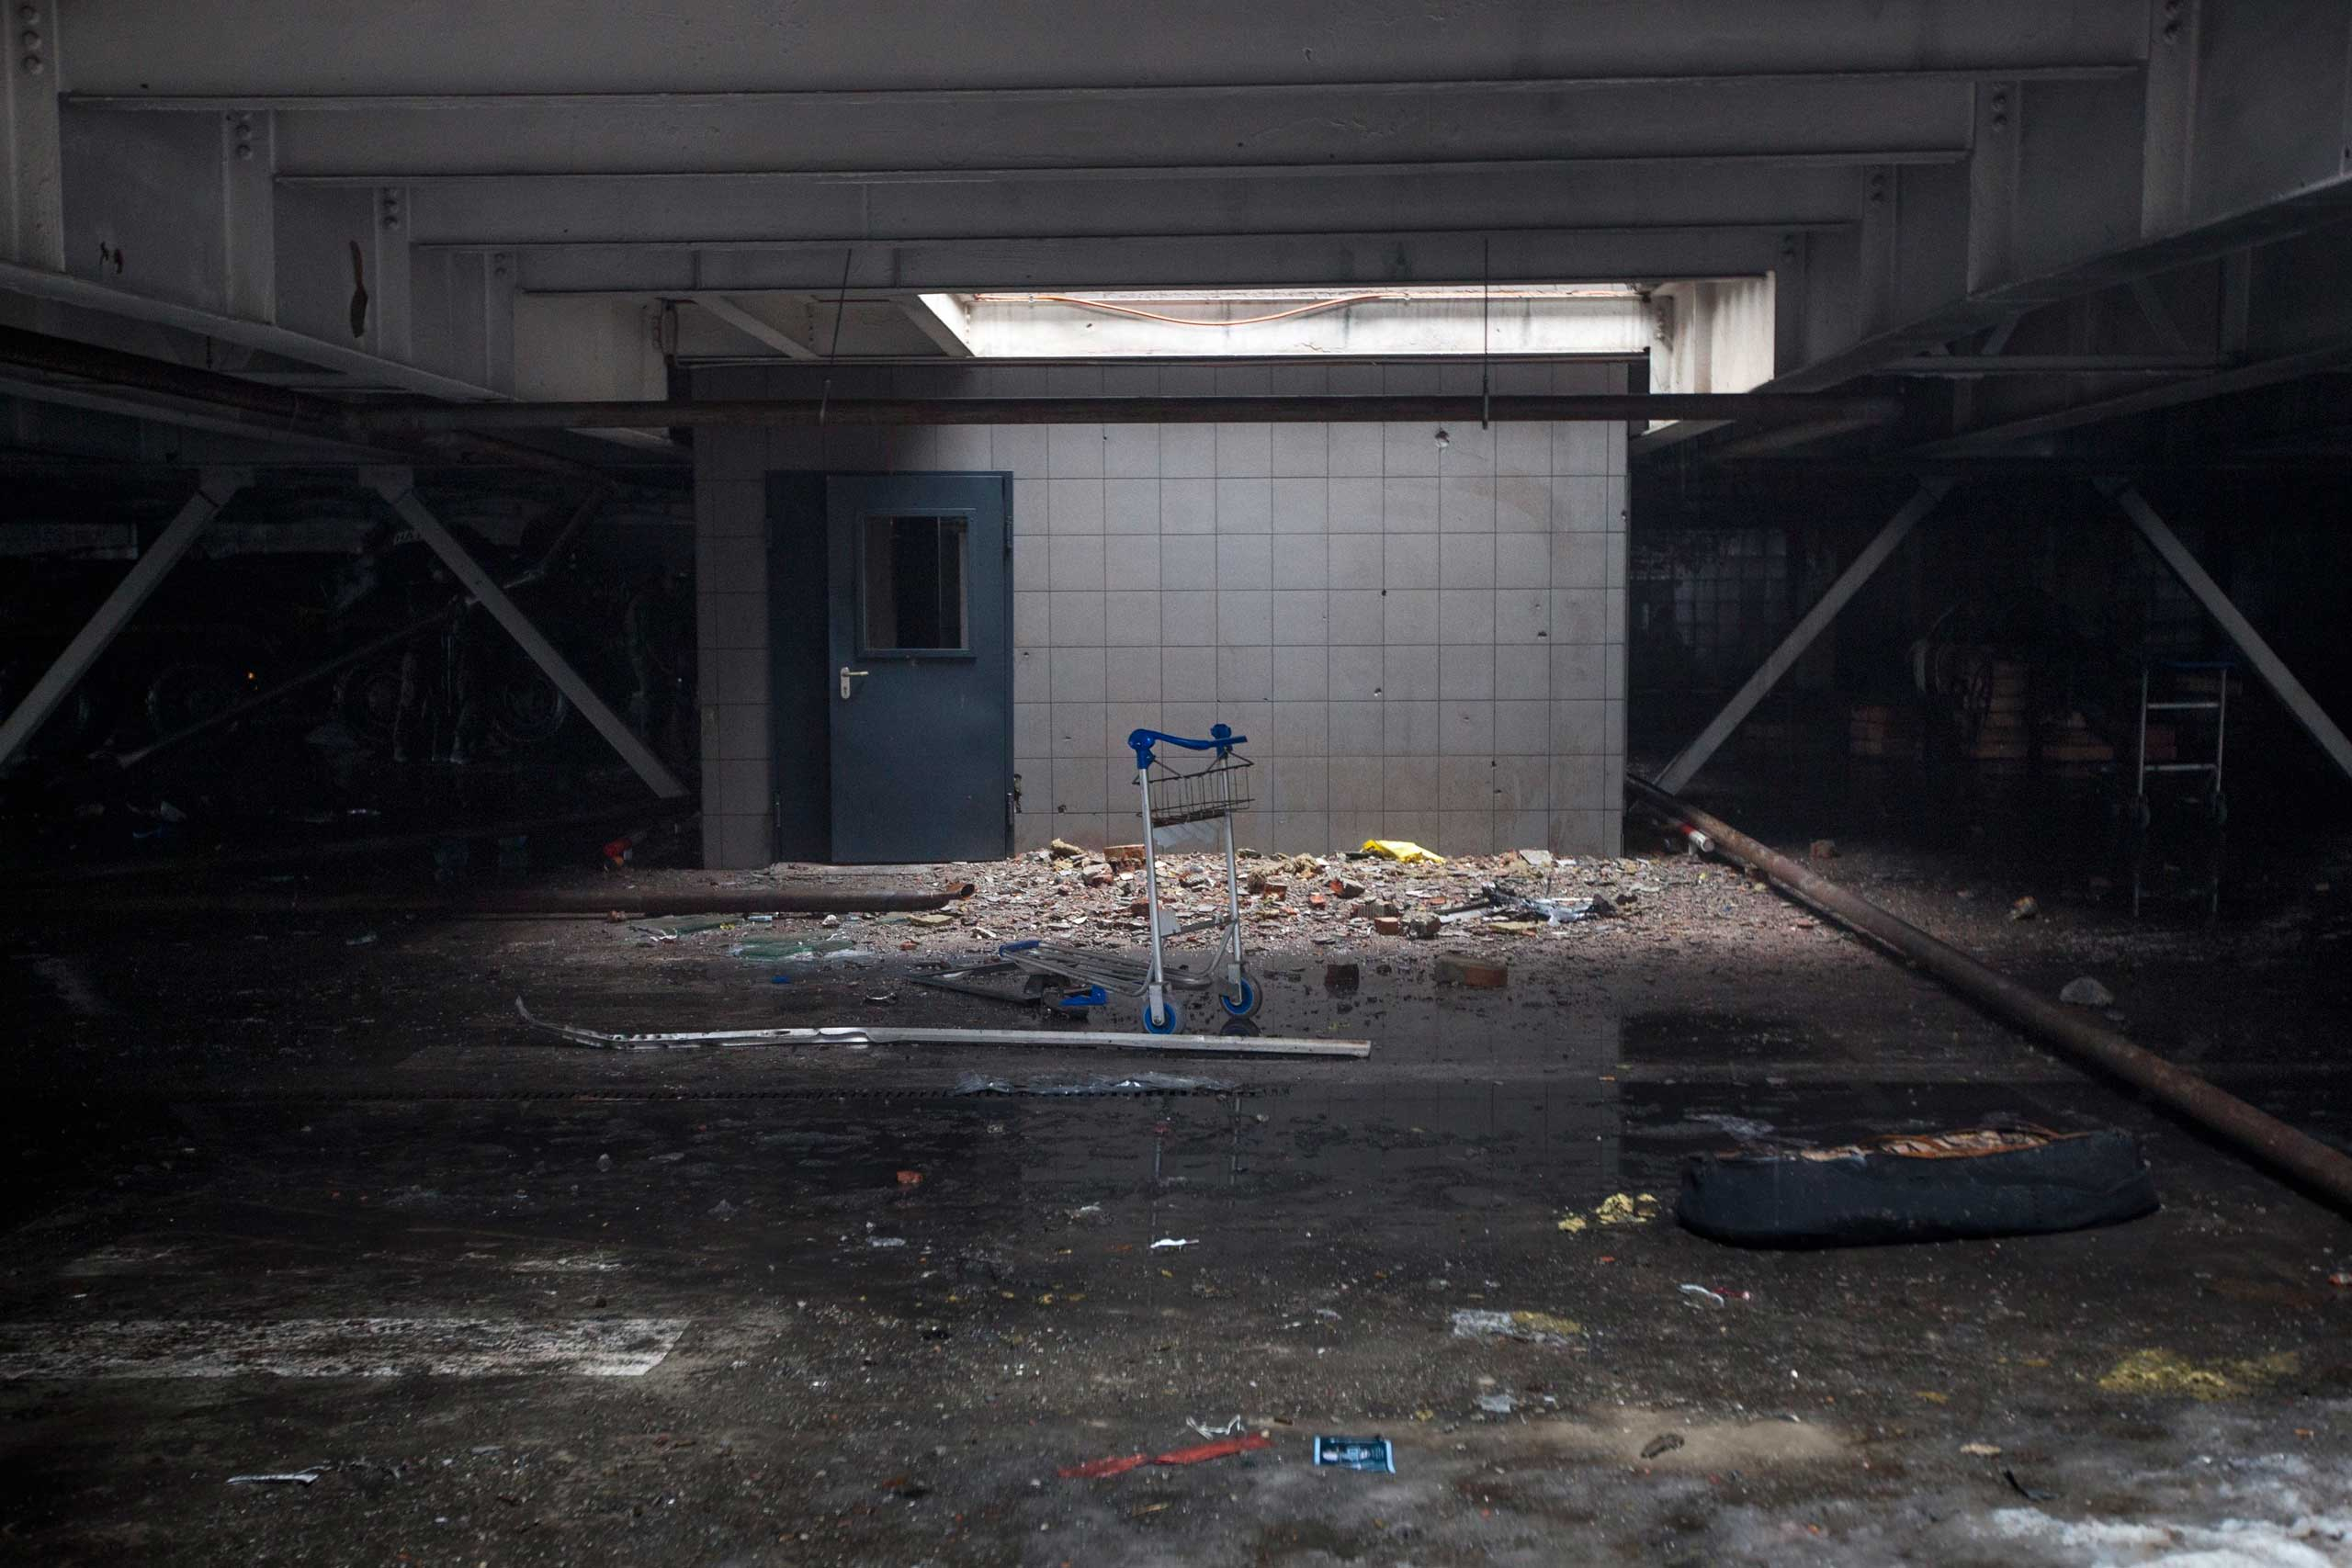 Inside the destroyed airport on Jan. 21, 2015.